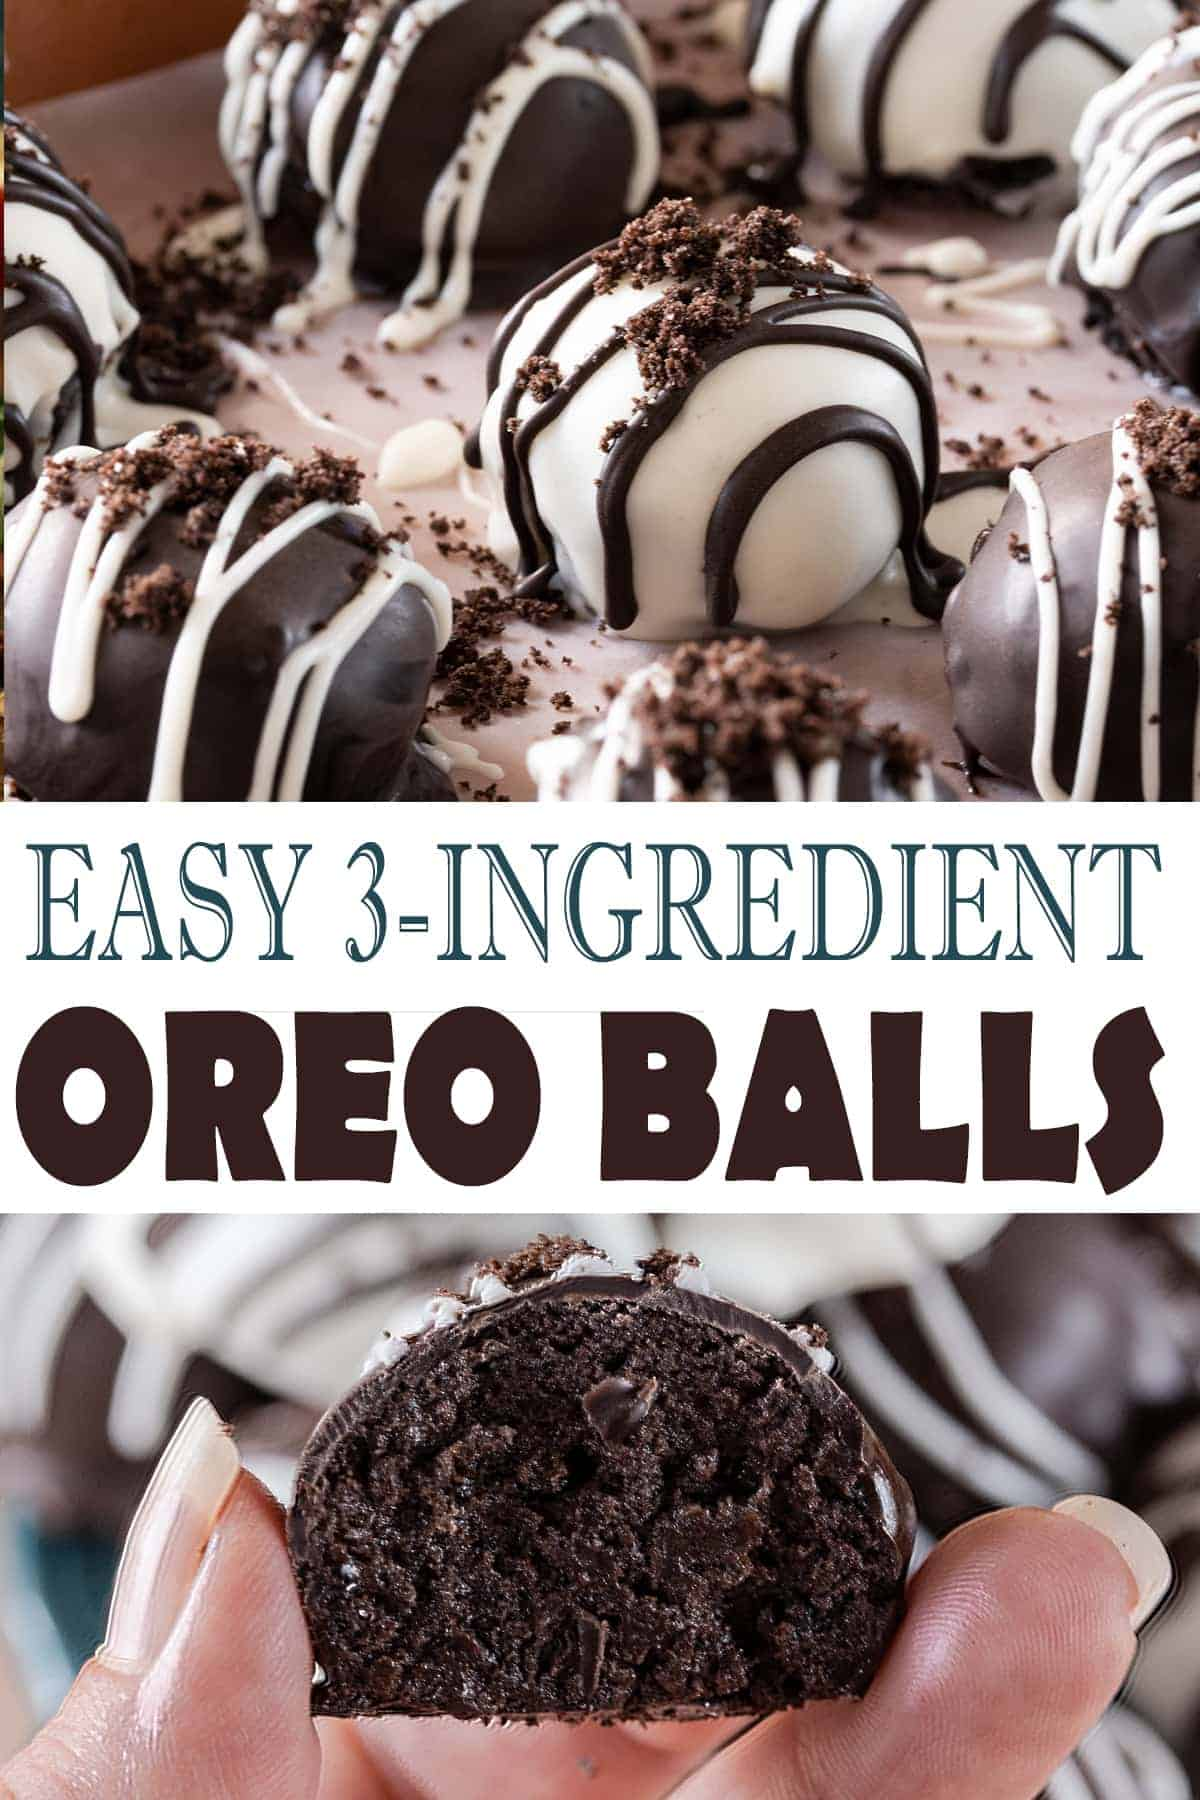 Easy Oreo Balls Recipe on a cookie sheet with chocolate decorations